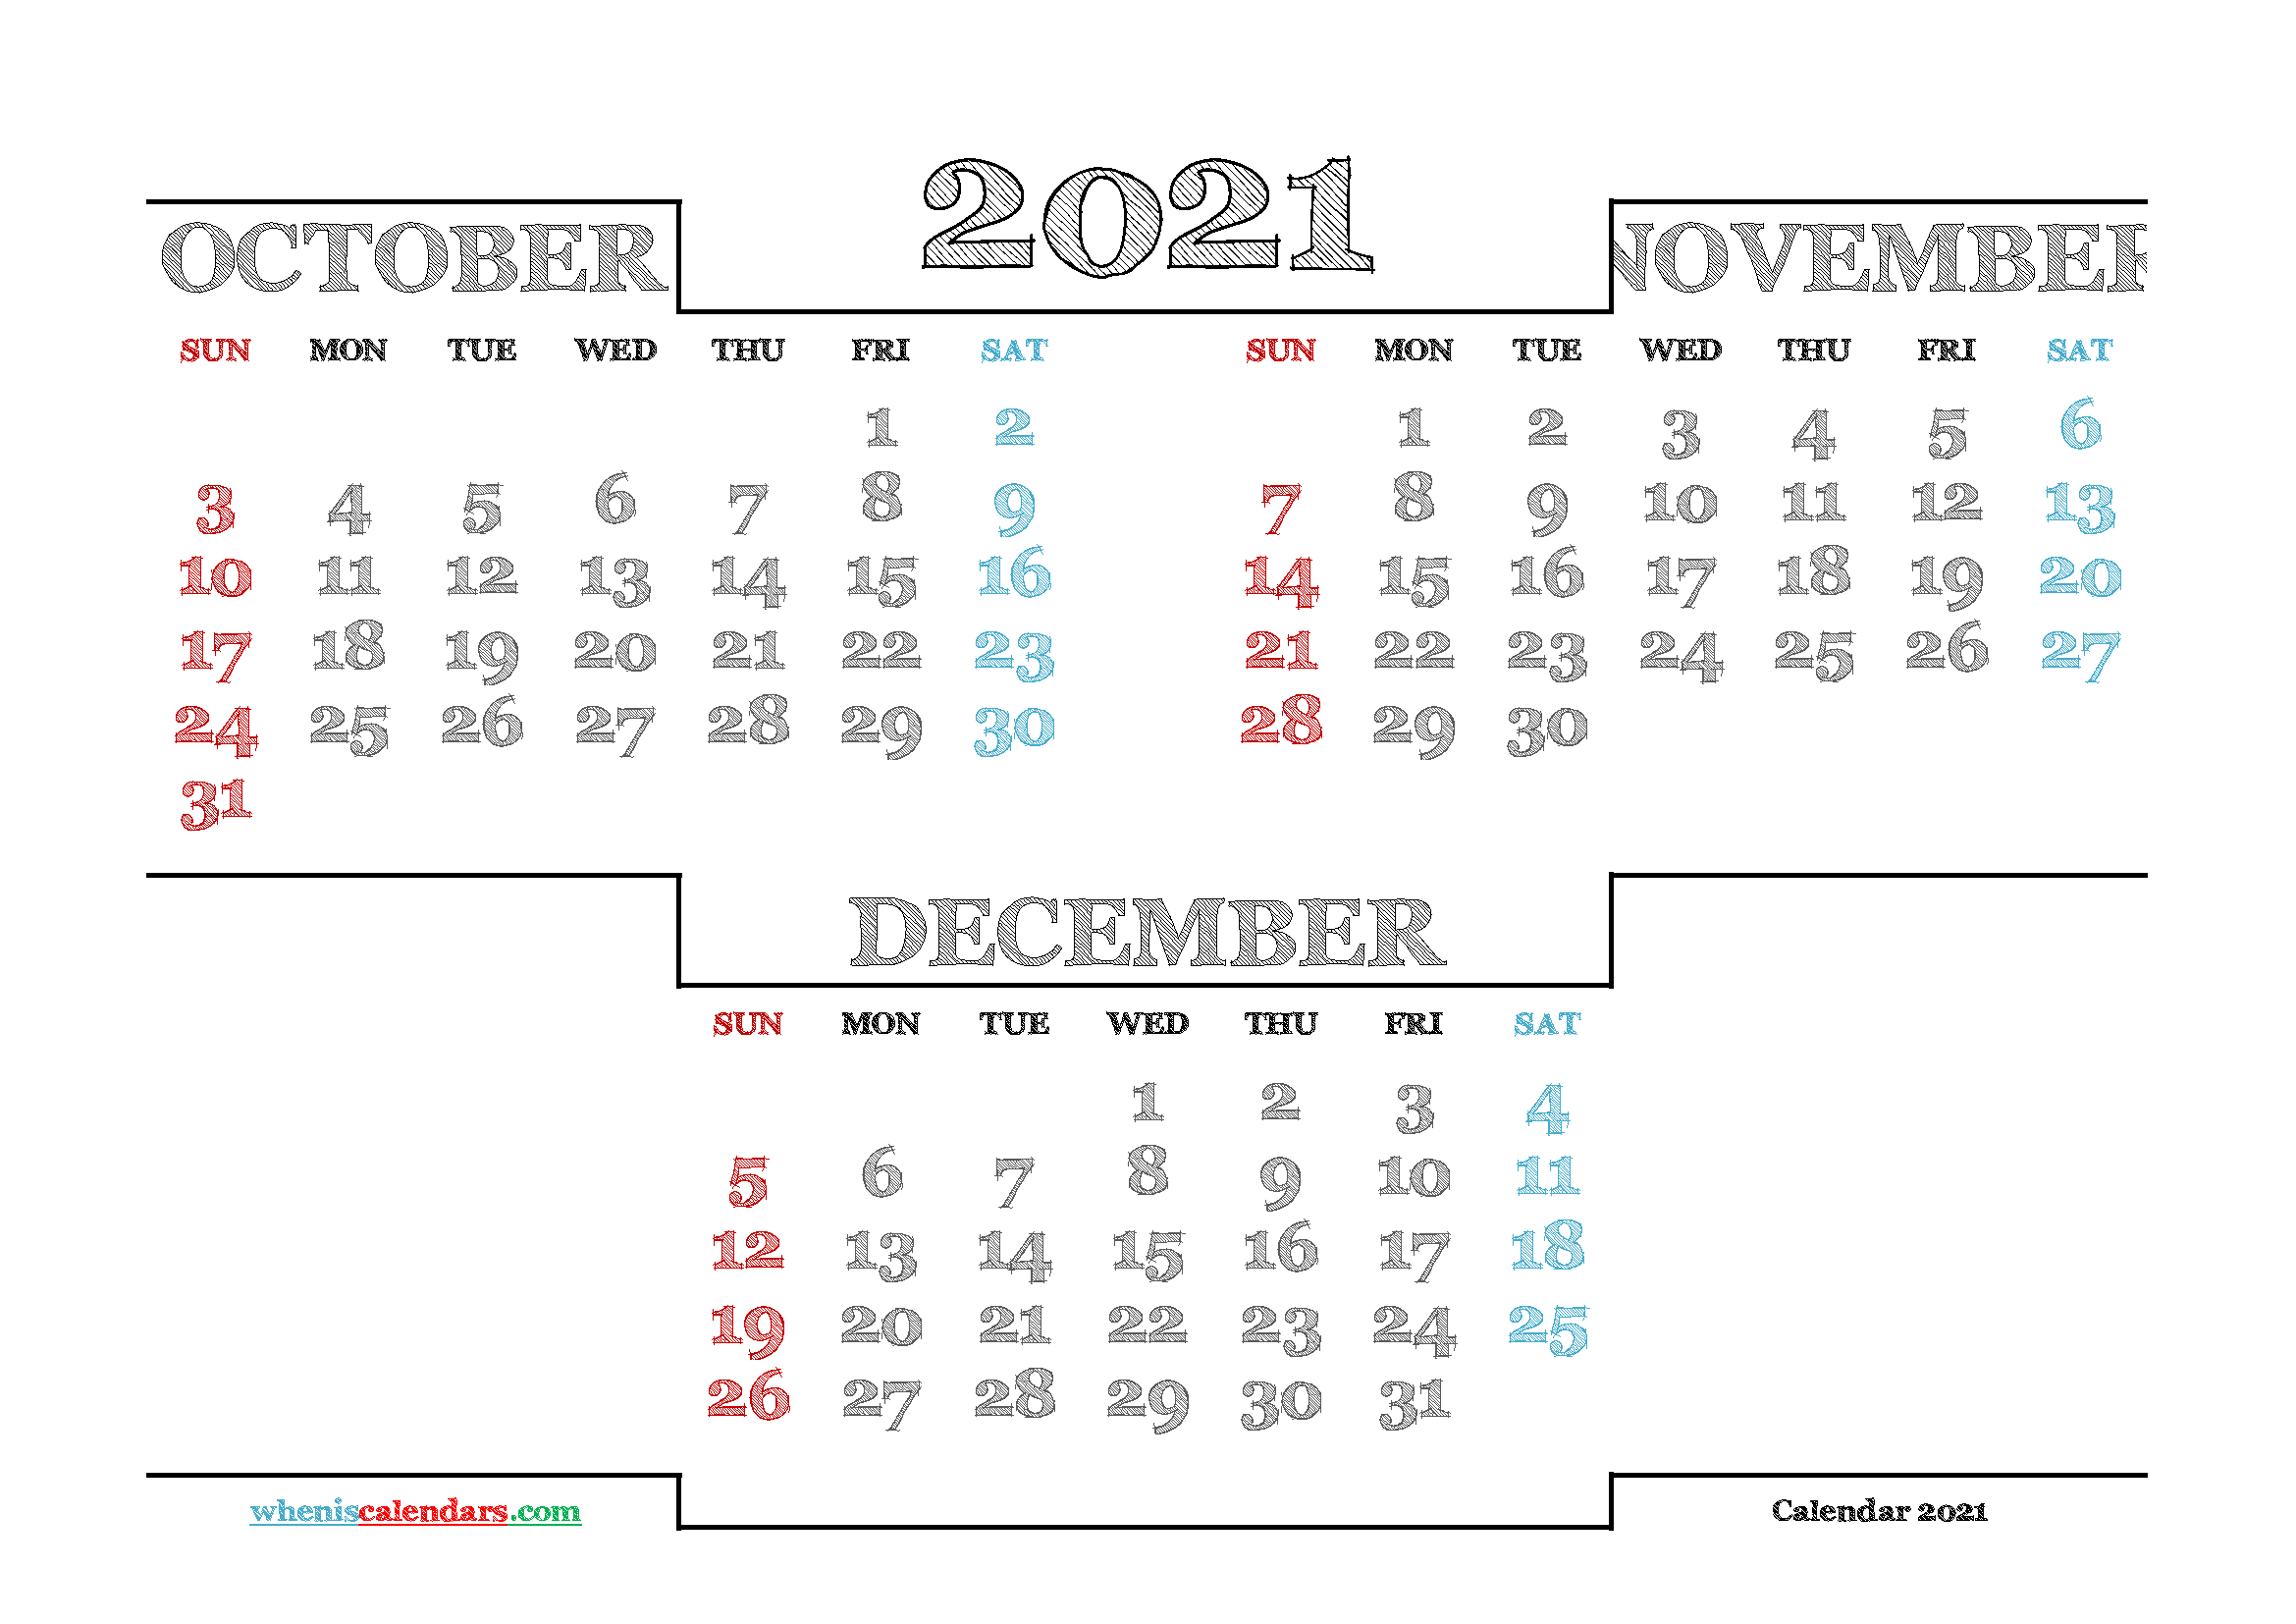 October November December 2021 Calendar printable 3 month calendar on one page